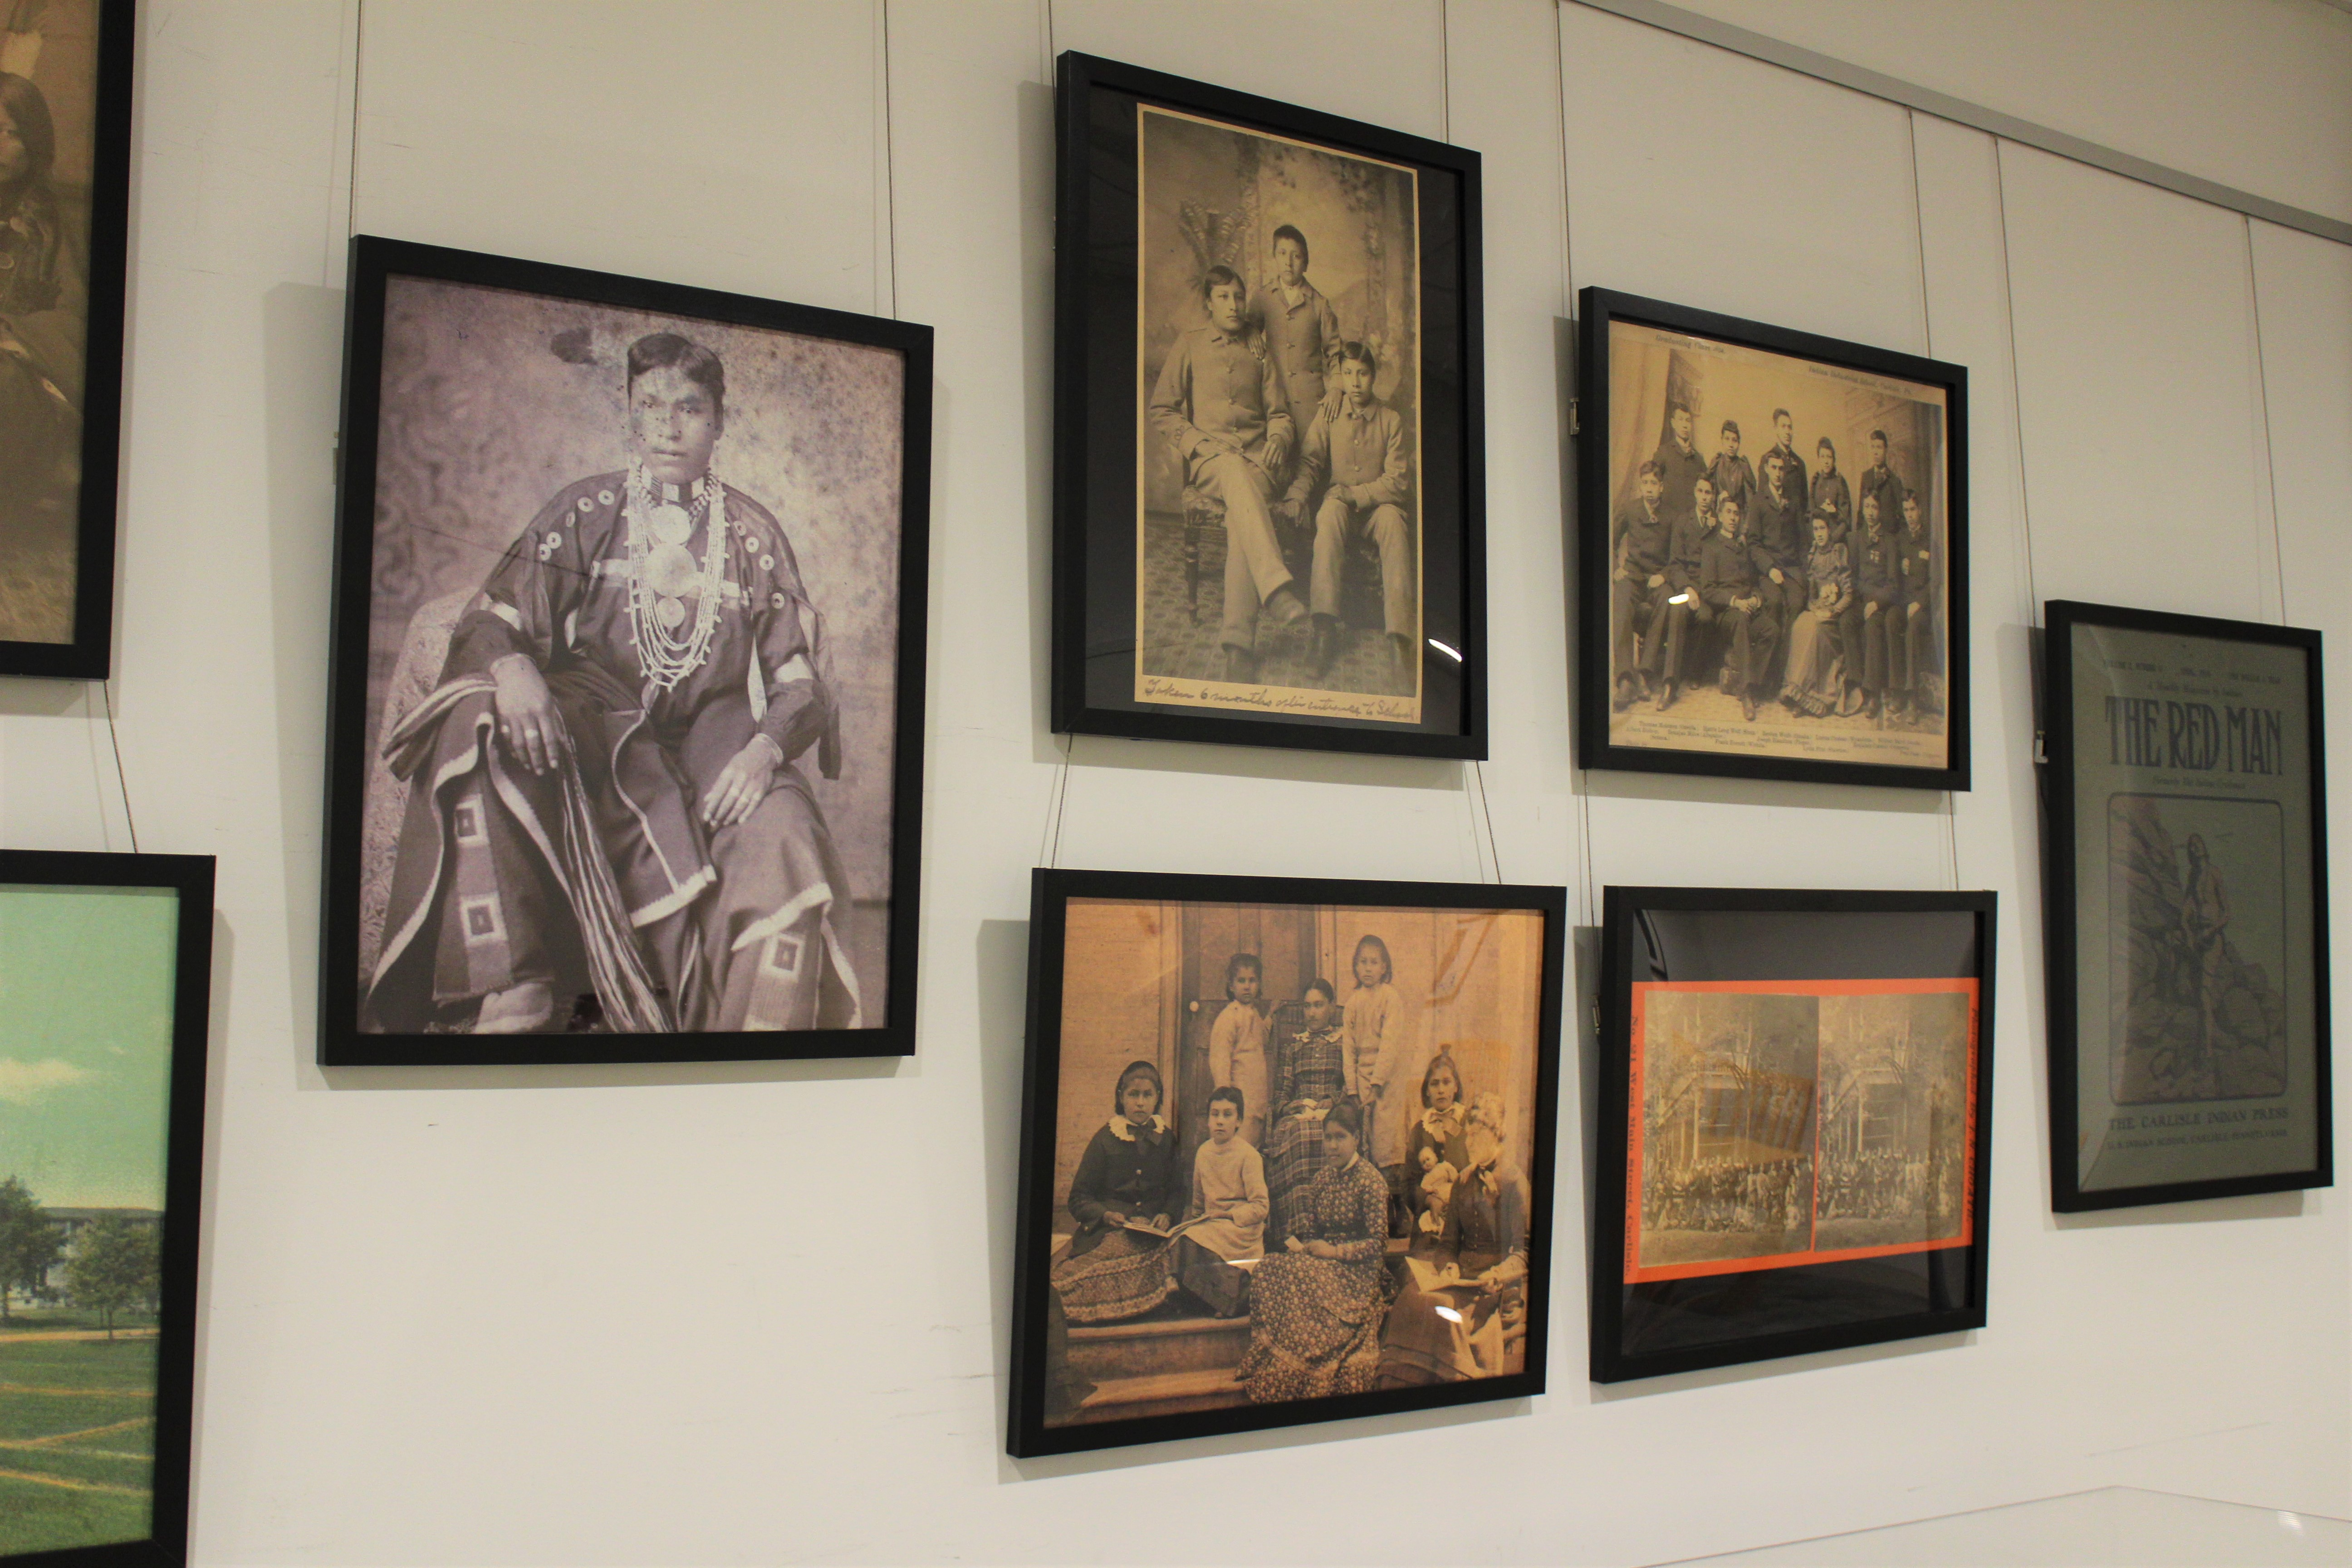 Hanging photos of various native americans